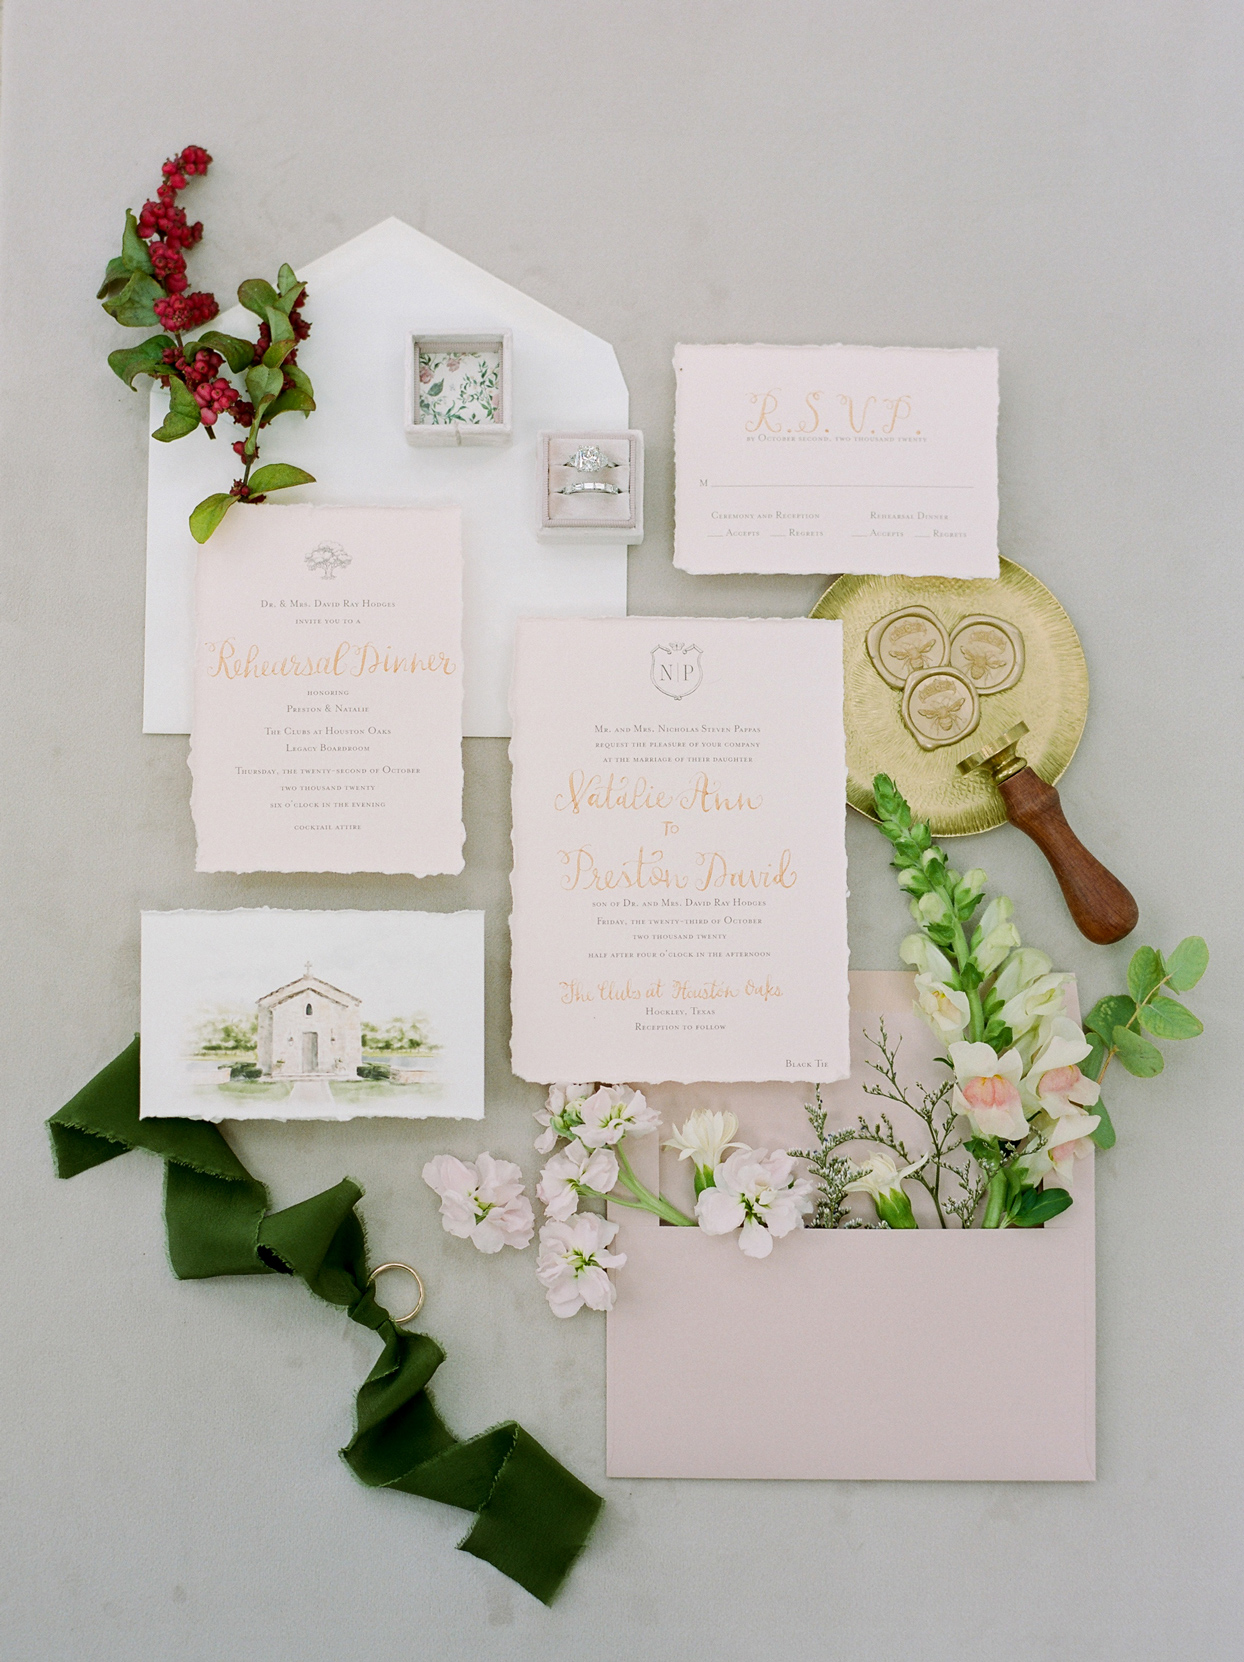 wedding invitation suite with rings and floral accents